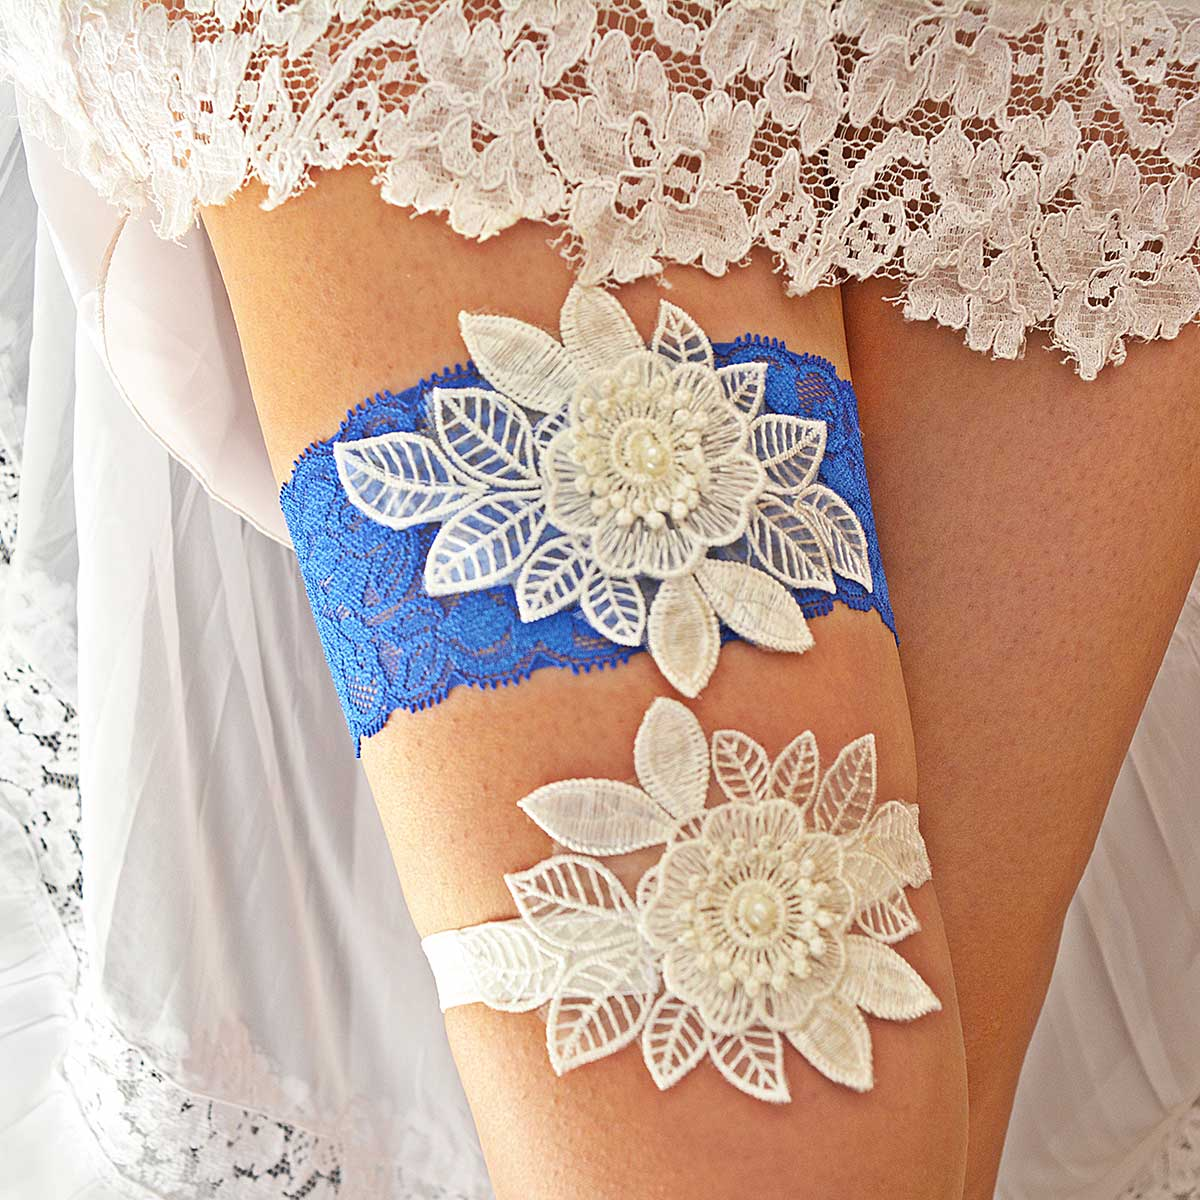 Royal Blue Garter With 3D White Flower Applique & Pearls